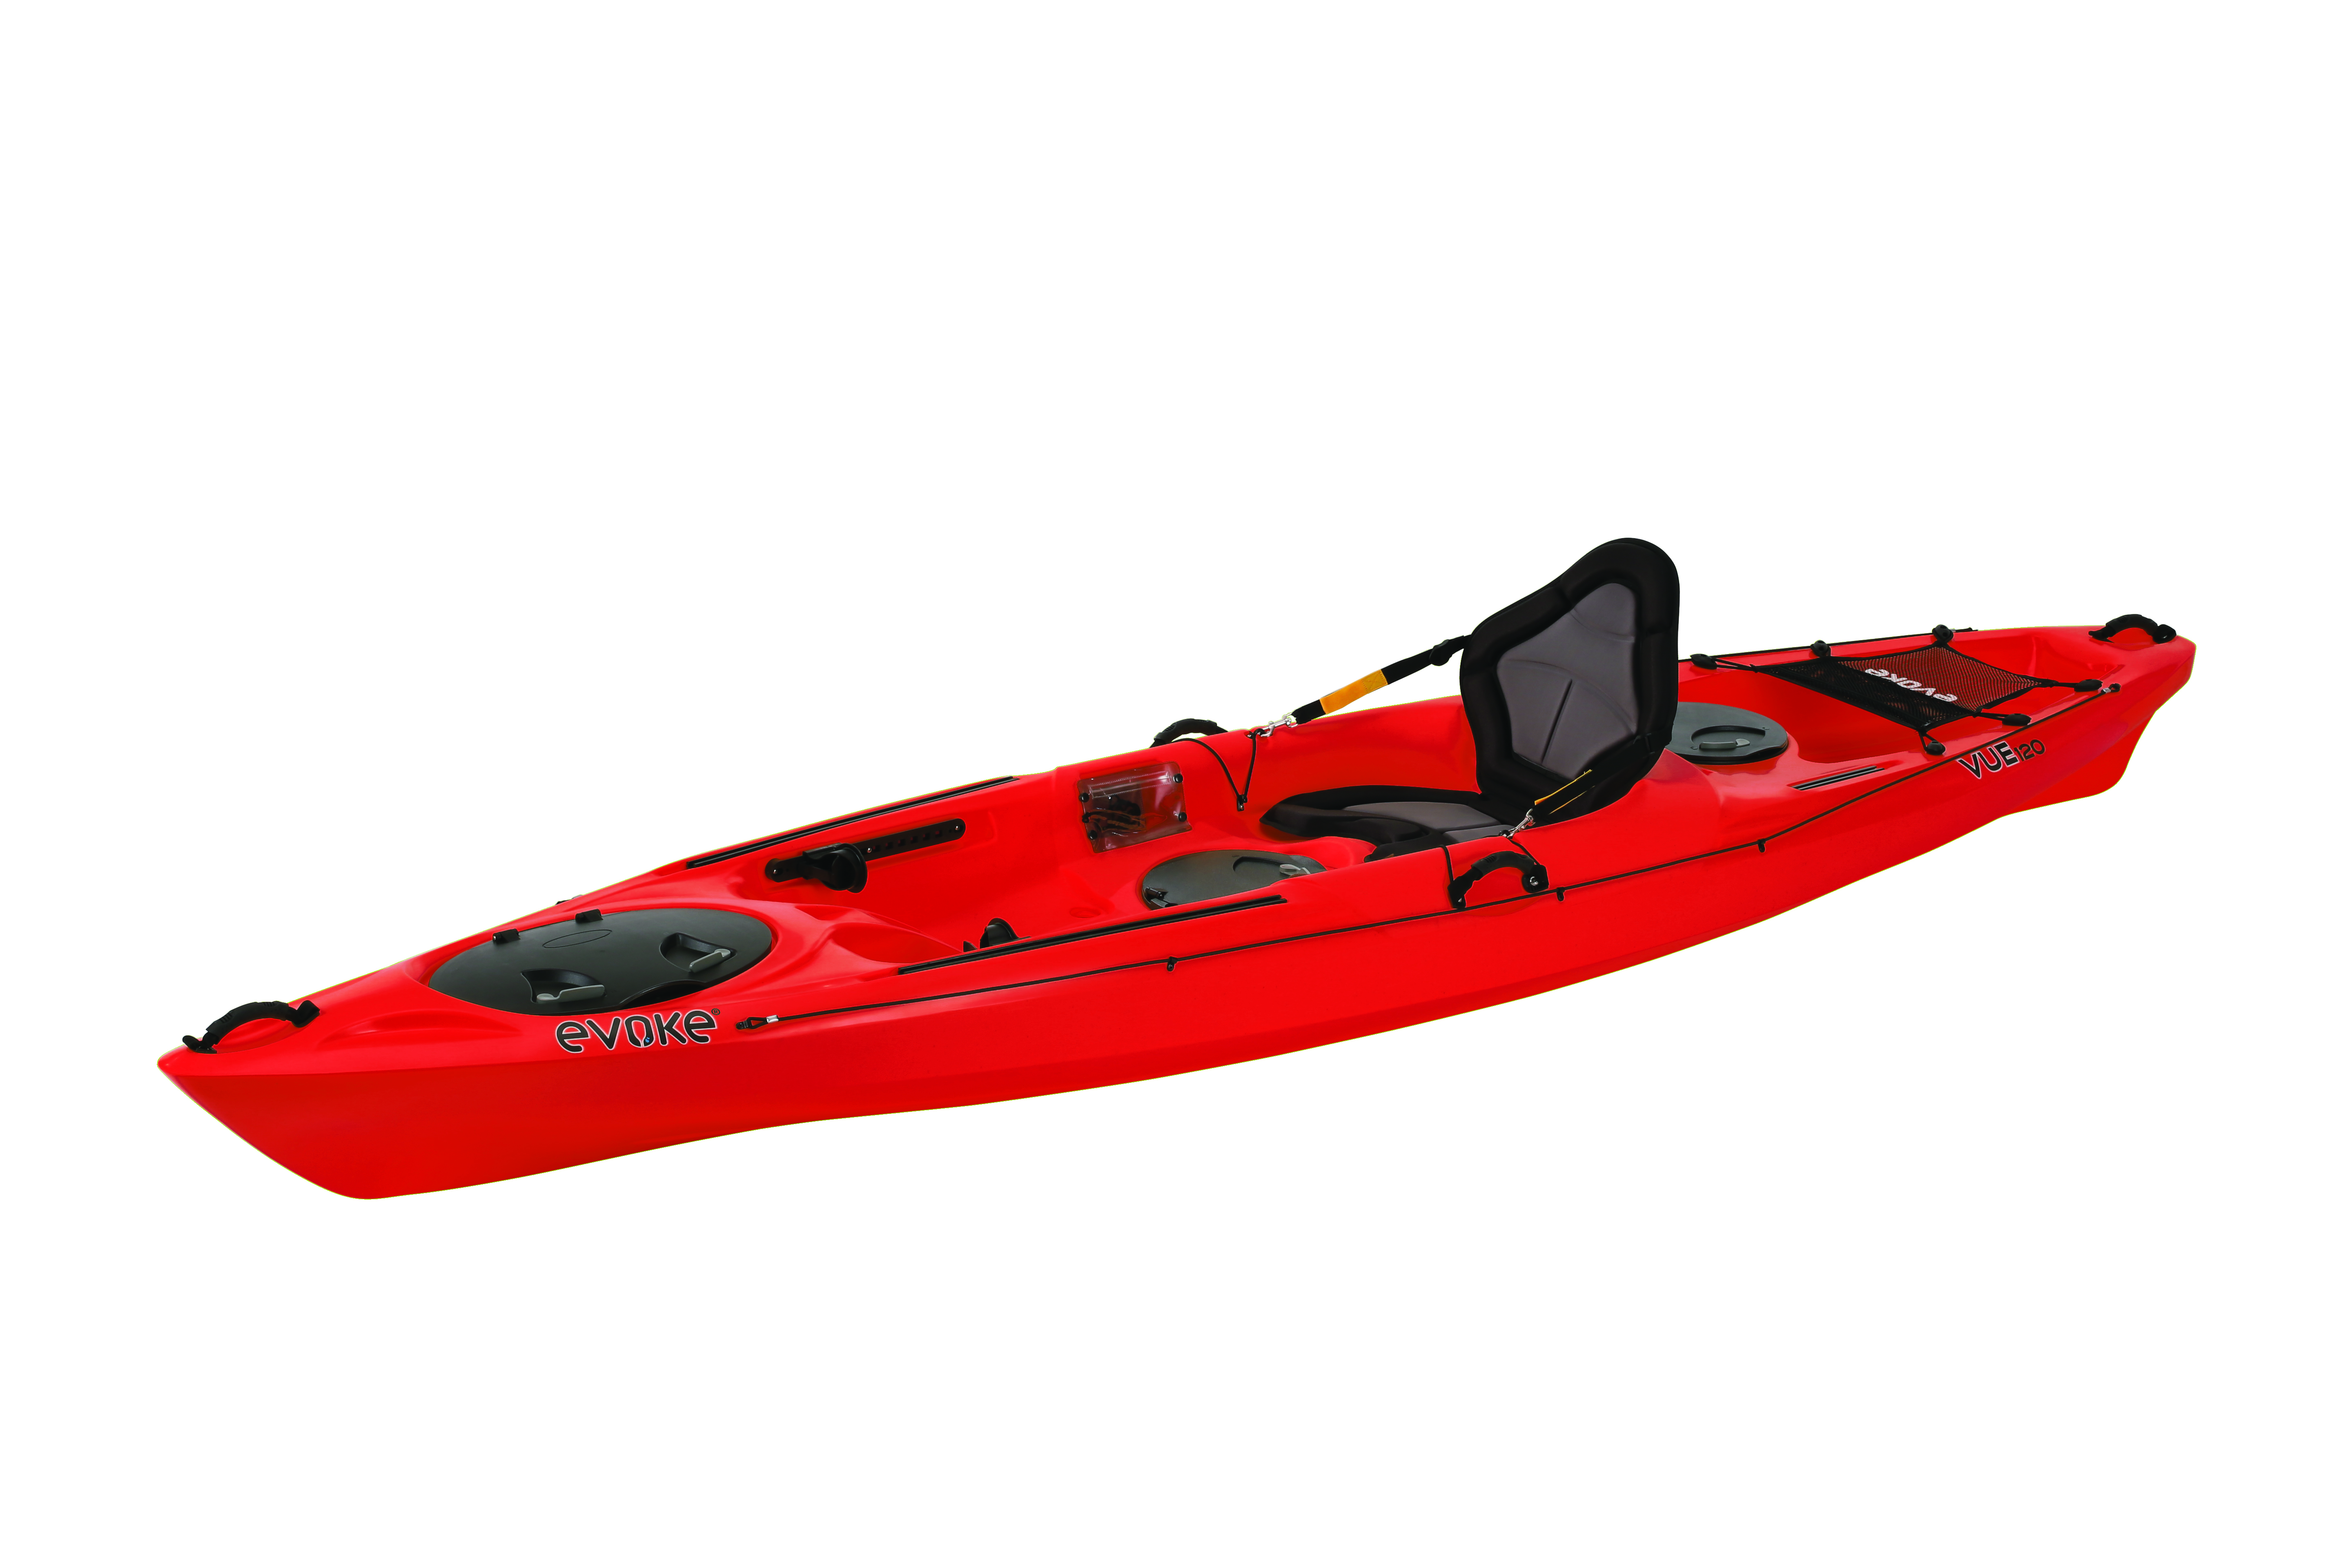 Kayaks: Vue 120 by Evoke - Image 4484